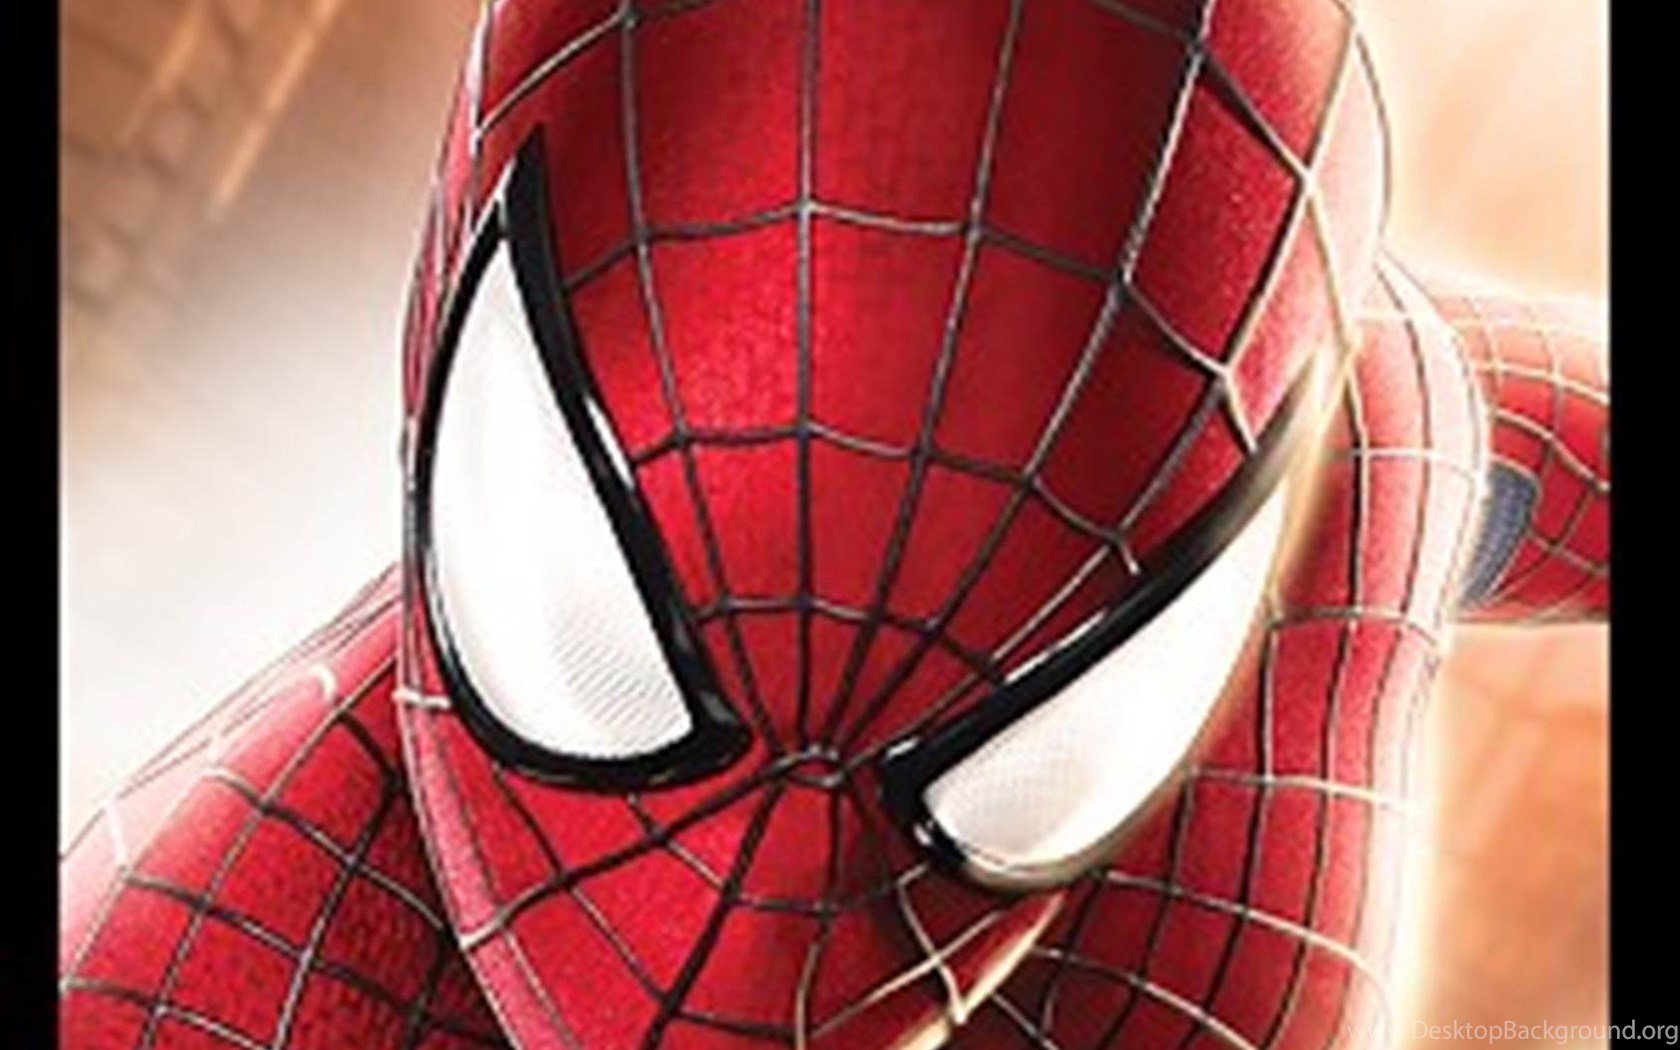 The Amazing Spider Man 2 Wallpapers Download Free 256 3 Mb At